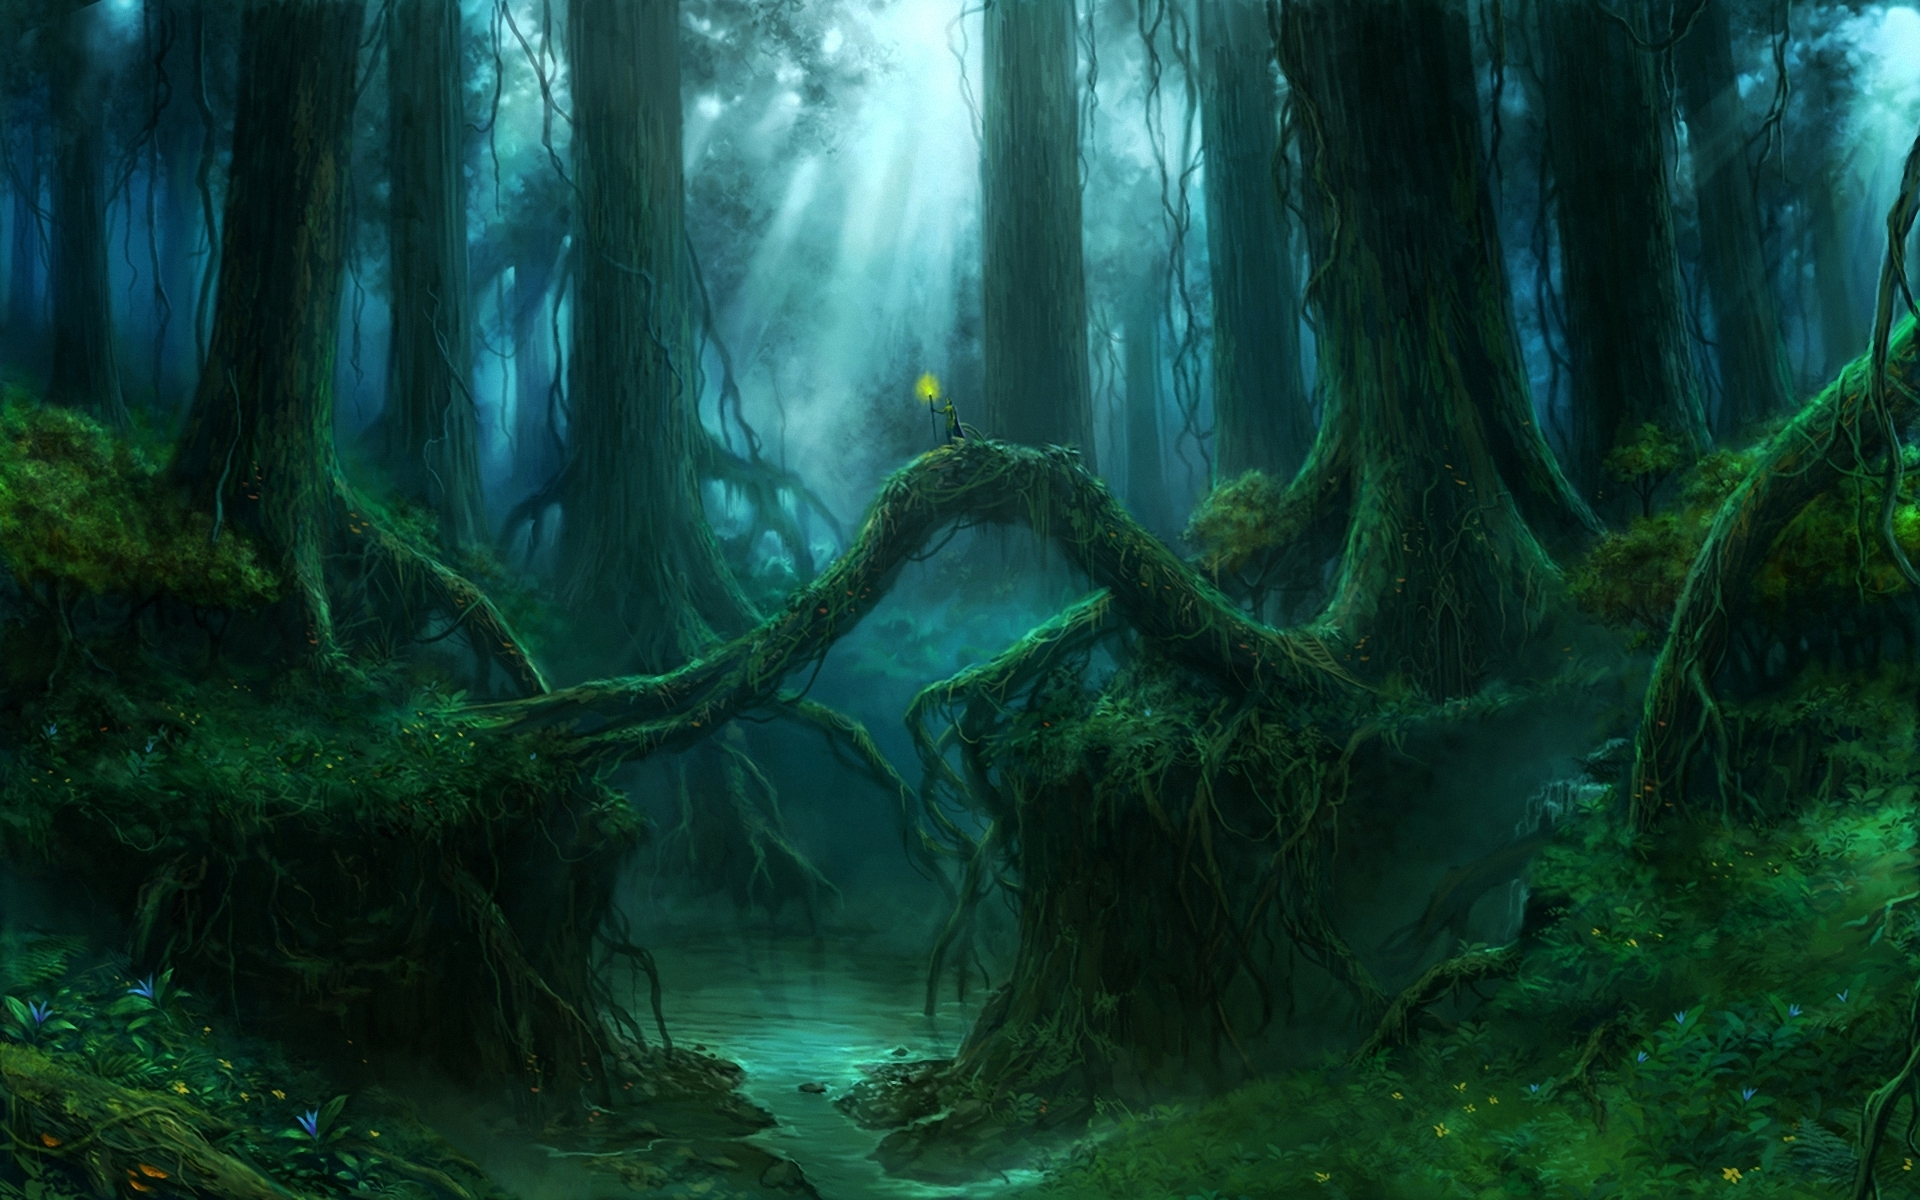 Gothic Forest Trees Fantasy river mood wallpaper backgroundGothic Forest Backgrounds